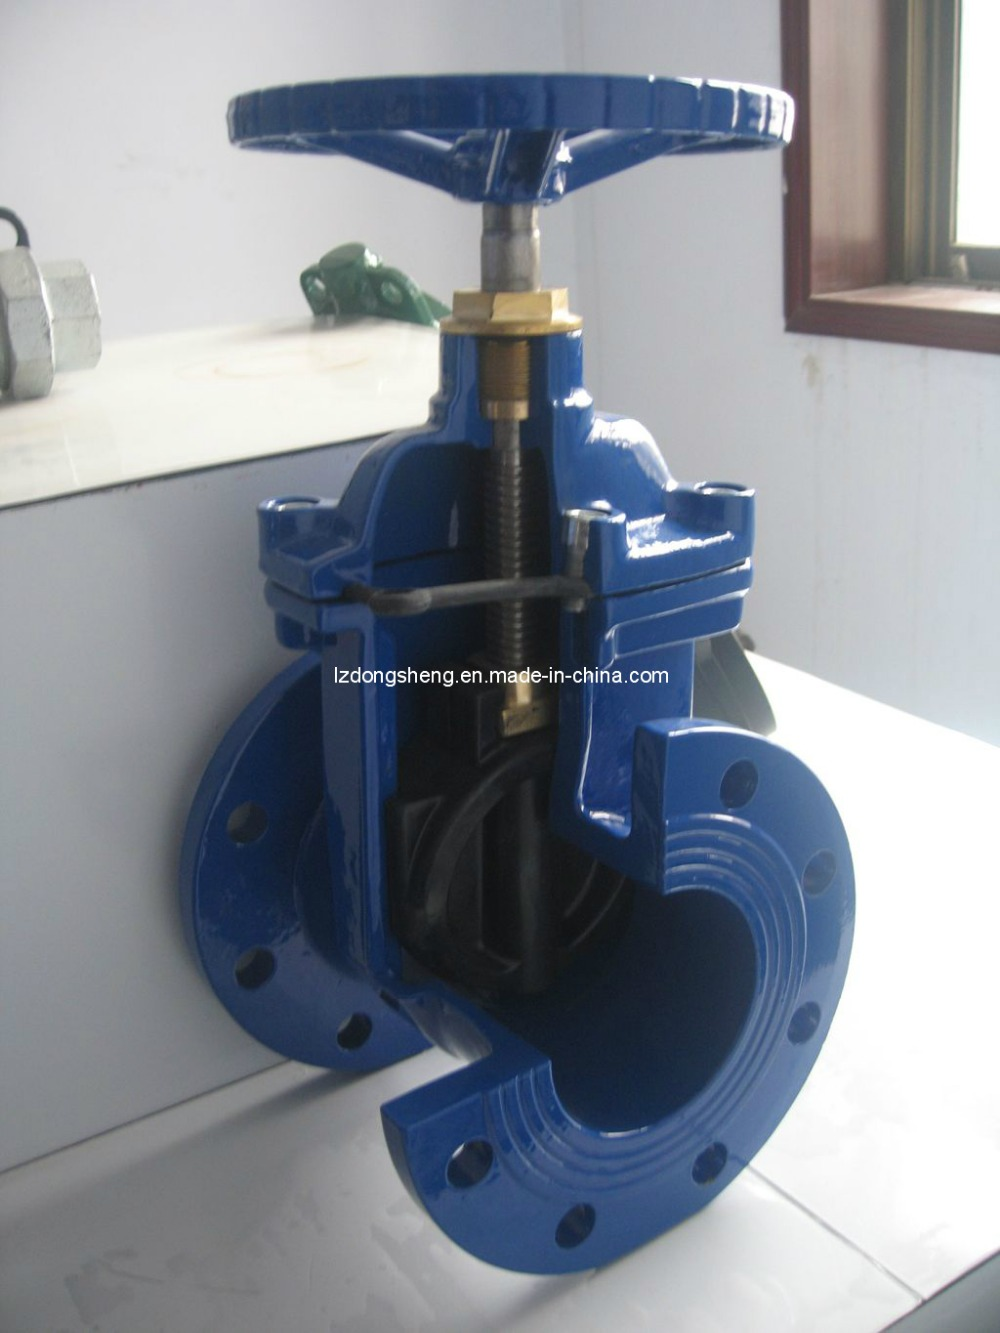 Din F4 Ductile Iron Water Pipe Stem Gate Valve - Buy Gate Valve,Cast Iron  Gate Valve,Gate Valve Product on Alibaba com